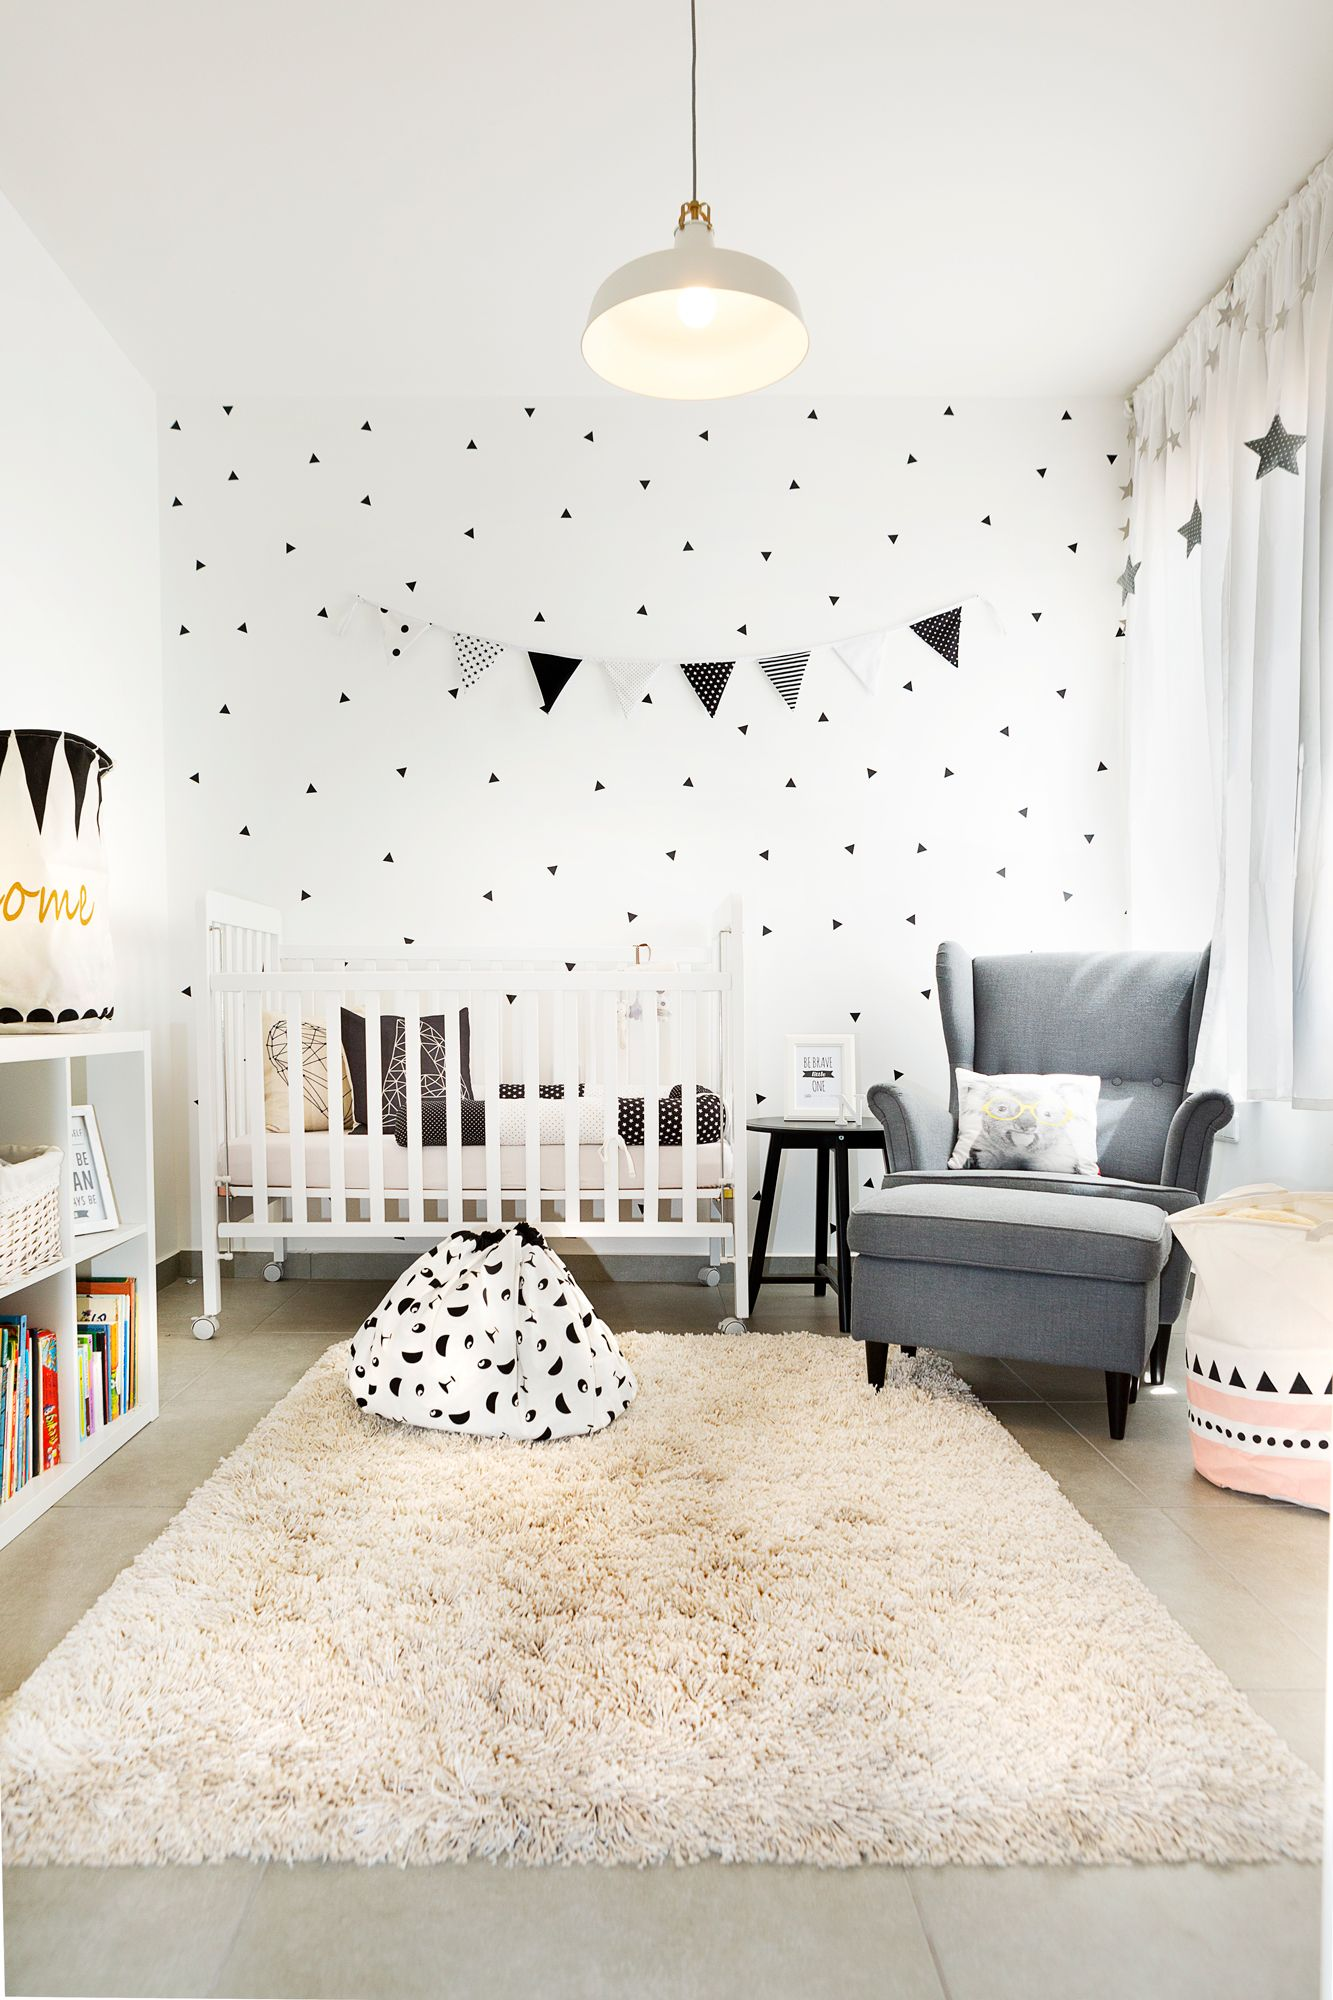 Black And White Geometric Design Baby Room Ikea Style By